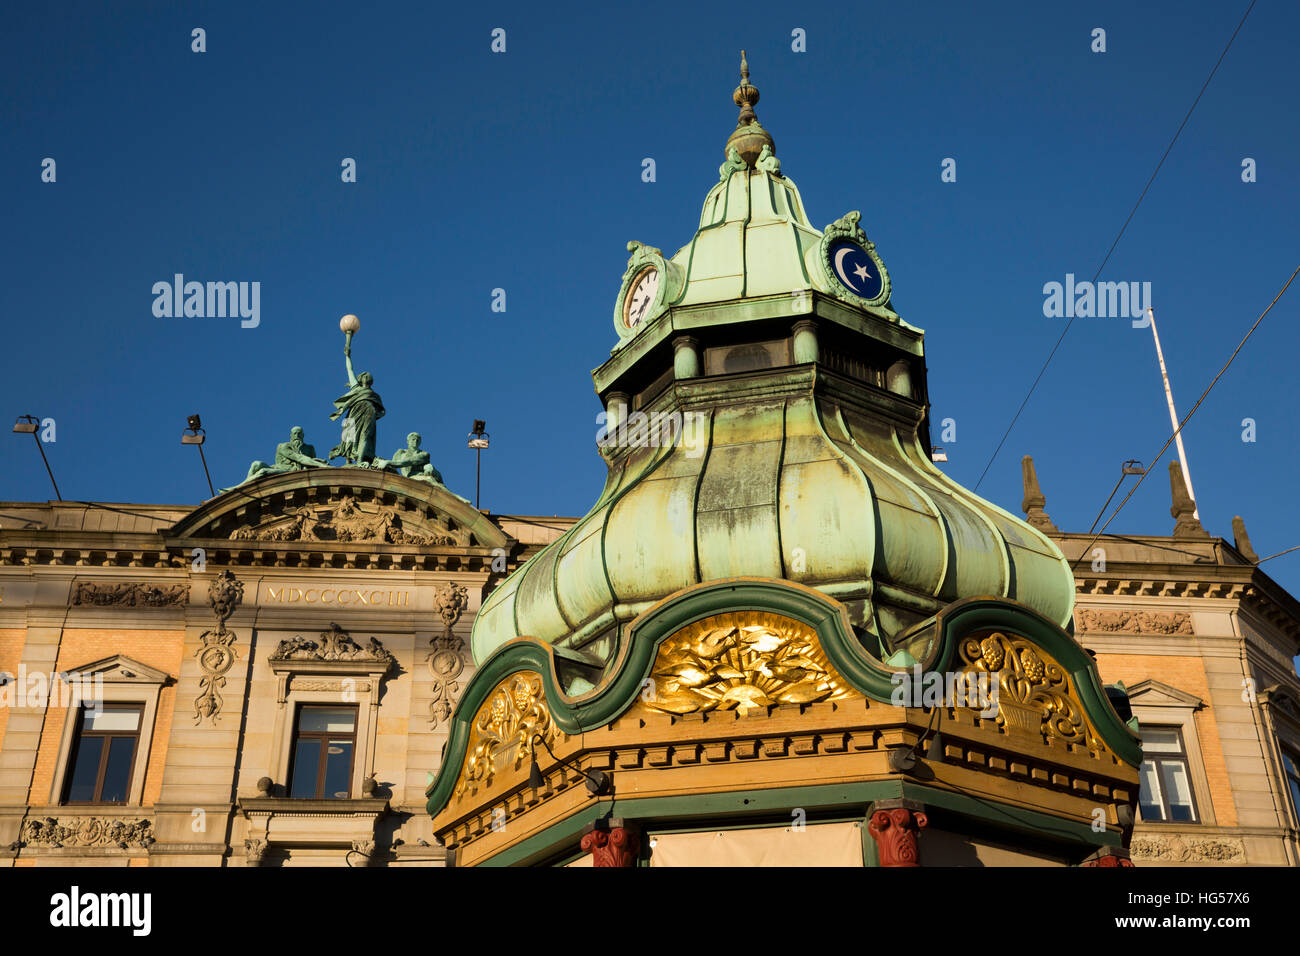 Denmark, Copenhagen, Kongens Nytorv, decorative copper roof of 1896 telephone kiosk designed by architect Fritz - Stock Image